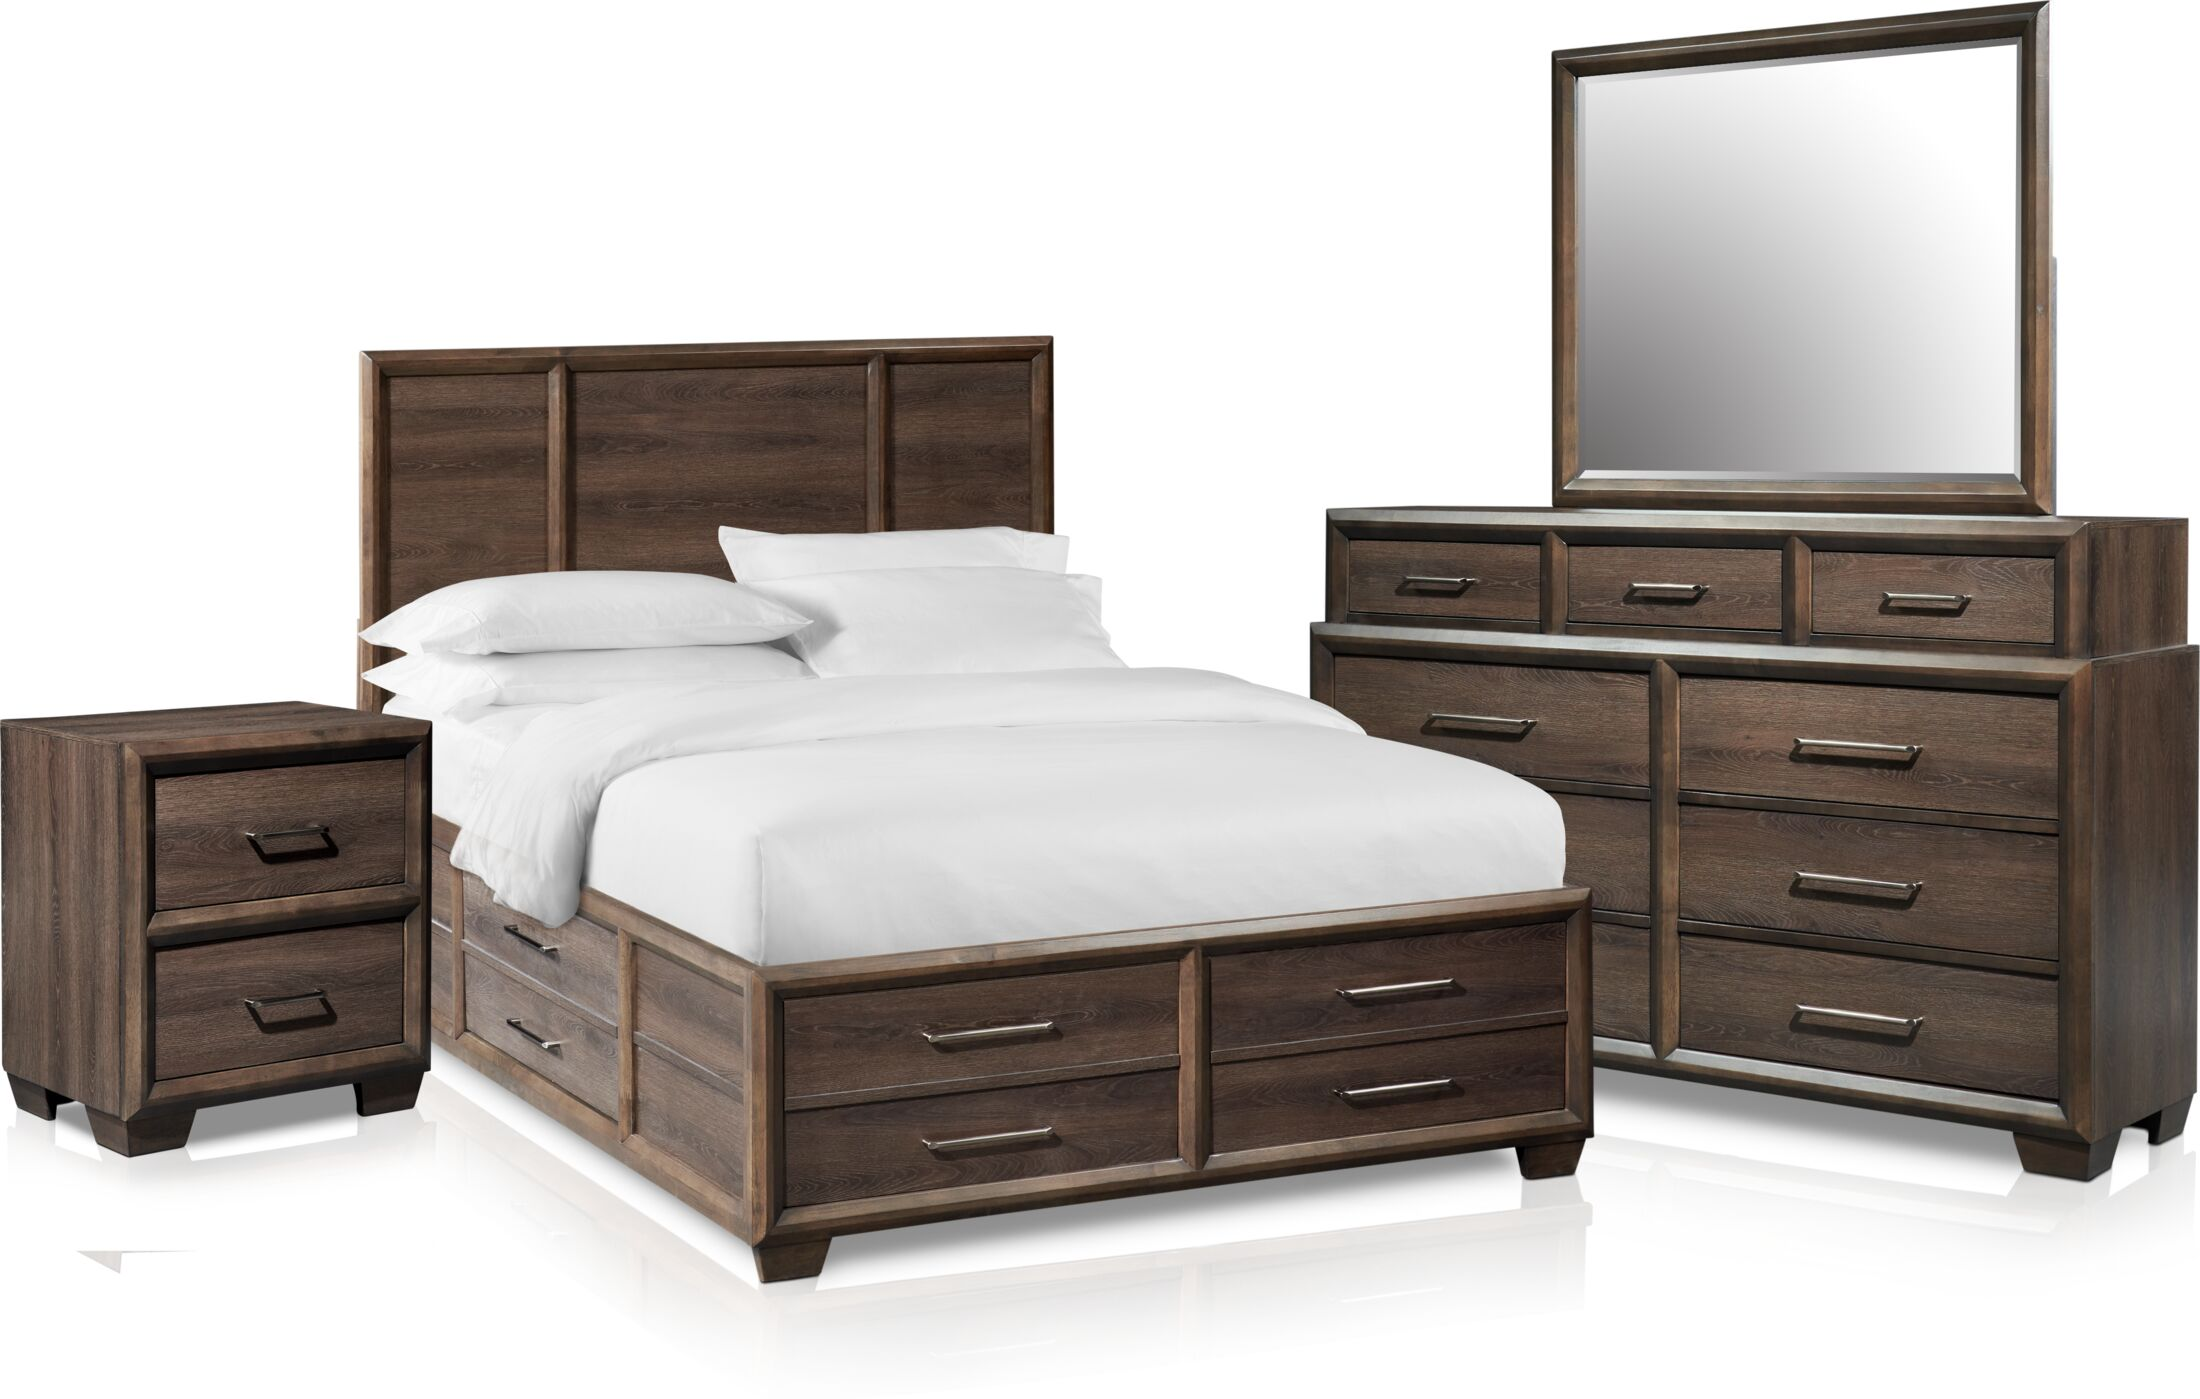 Bedroom Furniture - Dakota 6-Piece Panel Storage Bedroom Set with Nightstand, Dresser and Mirror